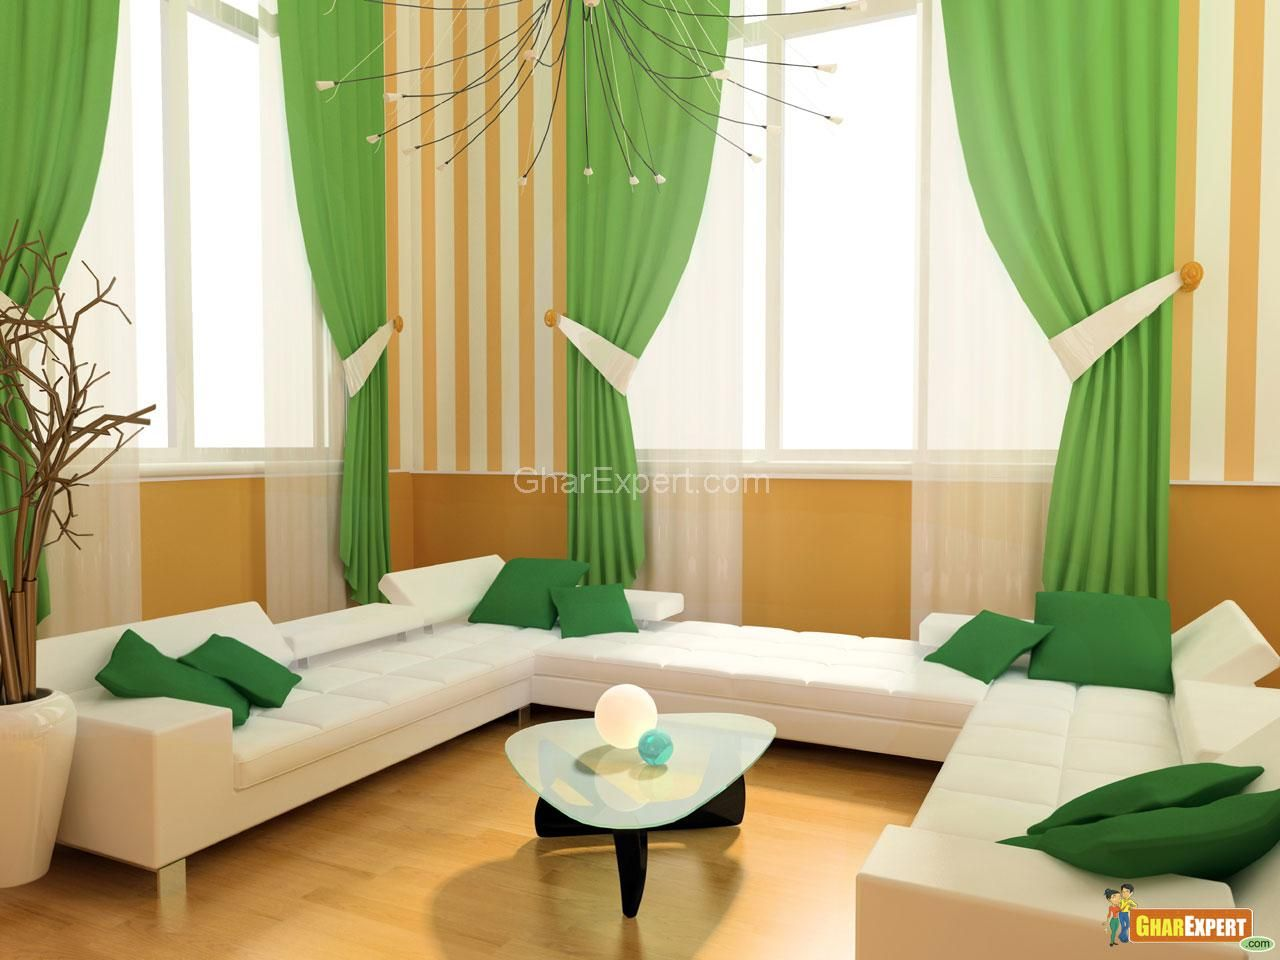 Curtain Designs For Living Room Enchanting Greencurtaindesignsforlivingroomwindow  Curtains For Living 2018